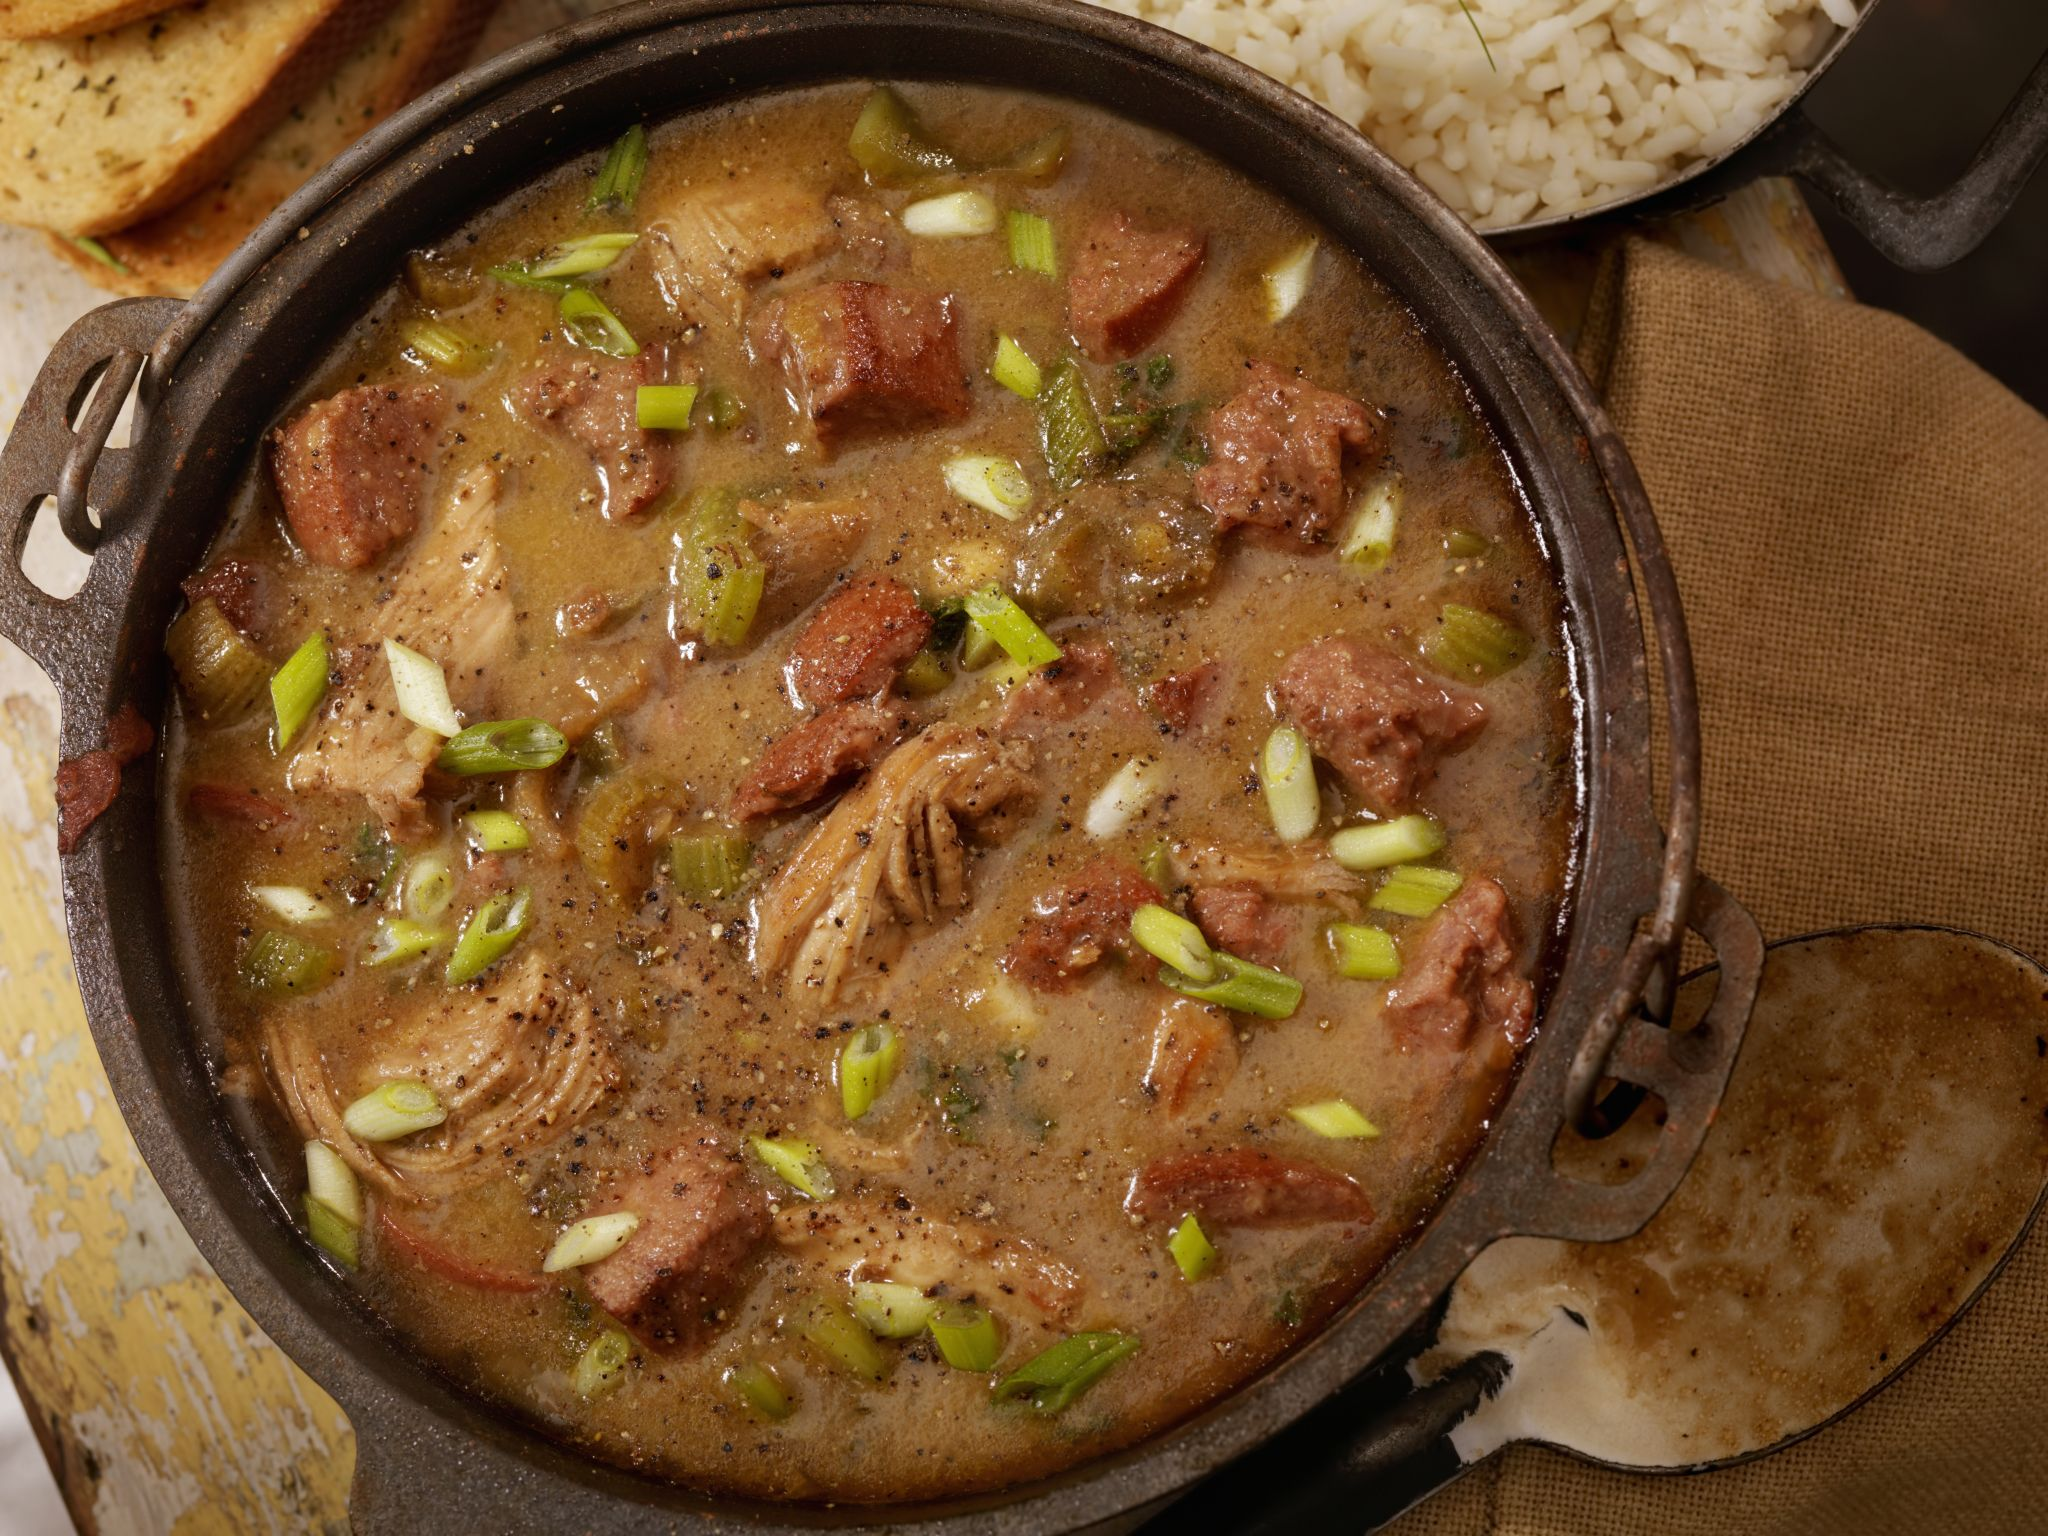 Turkey gumbo is the best part of Thanksgiving